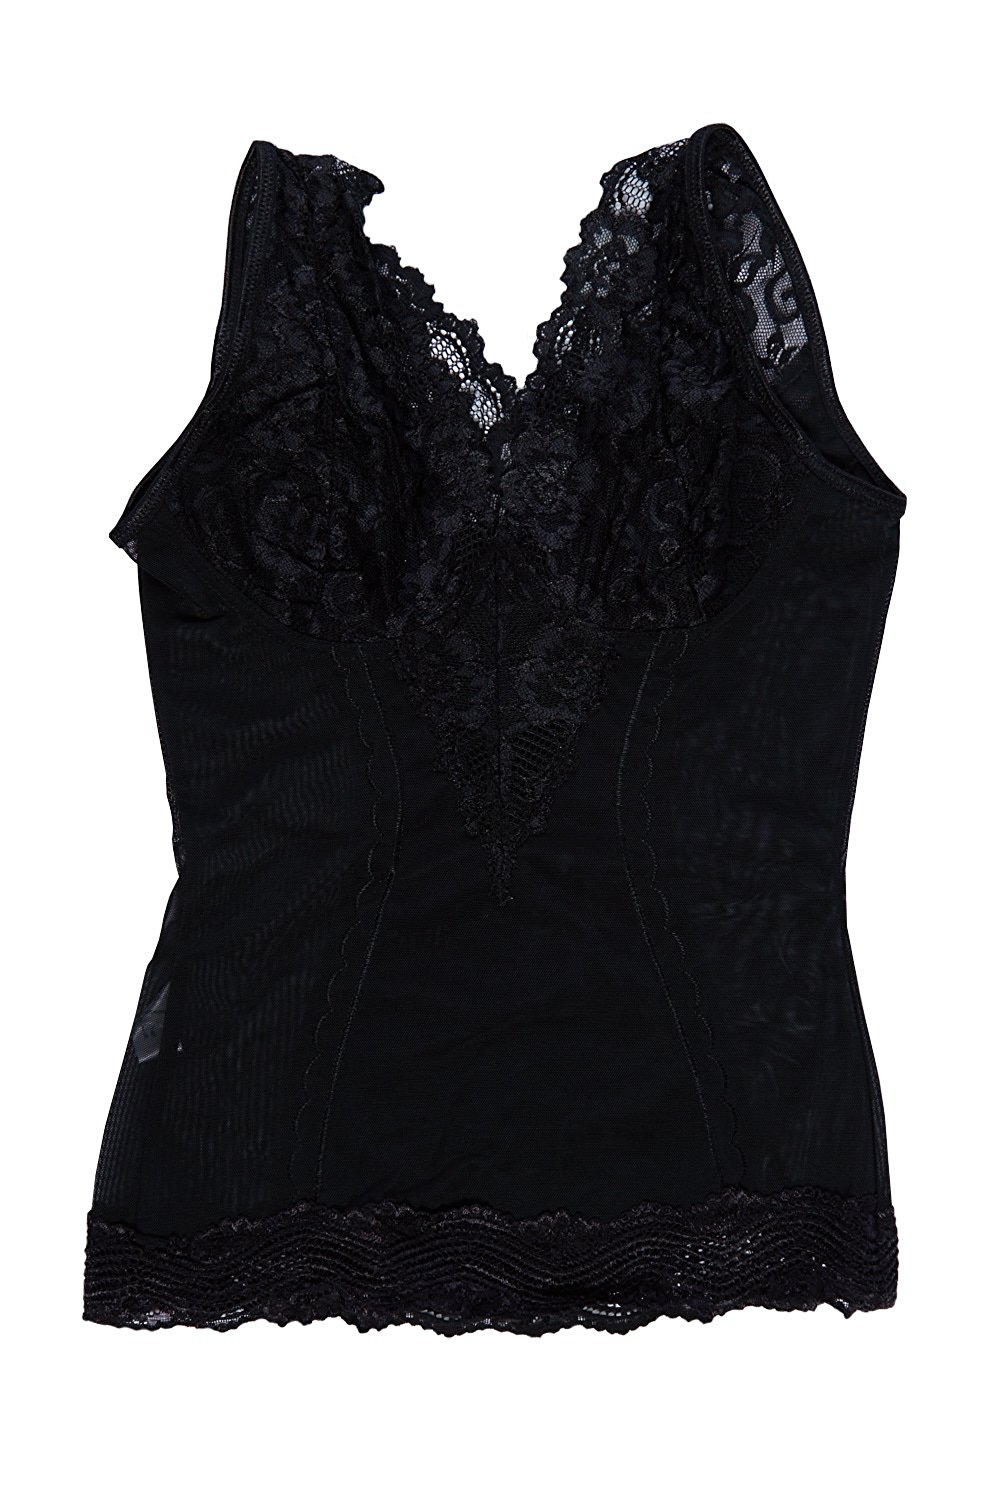 7f9d5a4cd66b9 Get Quotations · Womens Sexy Lace Deep Plunging Neckline Shapwear Camisole  6736